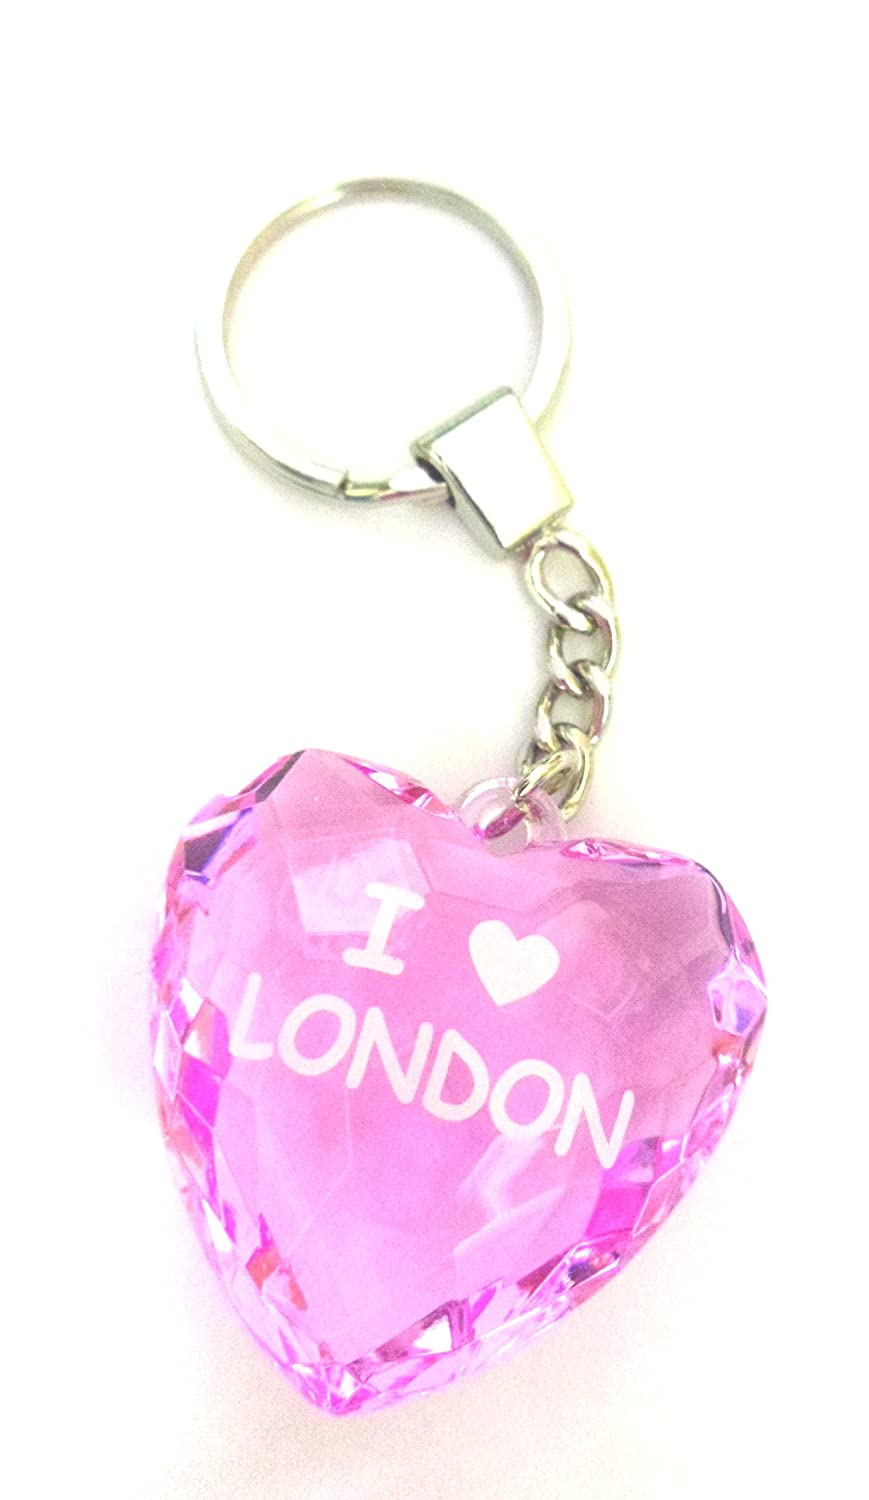 Amazon.com : I Love London Keyring in Pink / Pink Glass ...